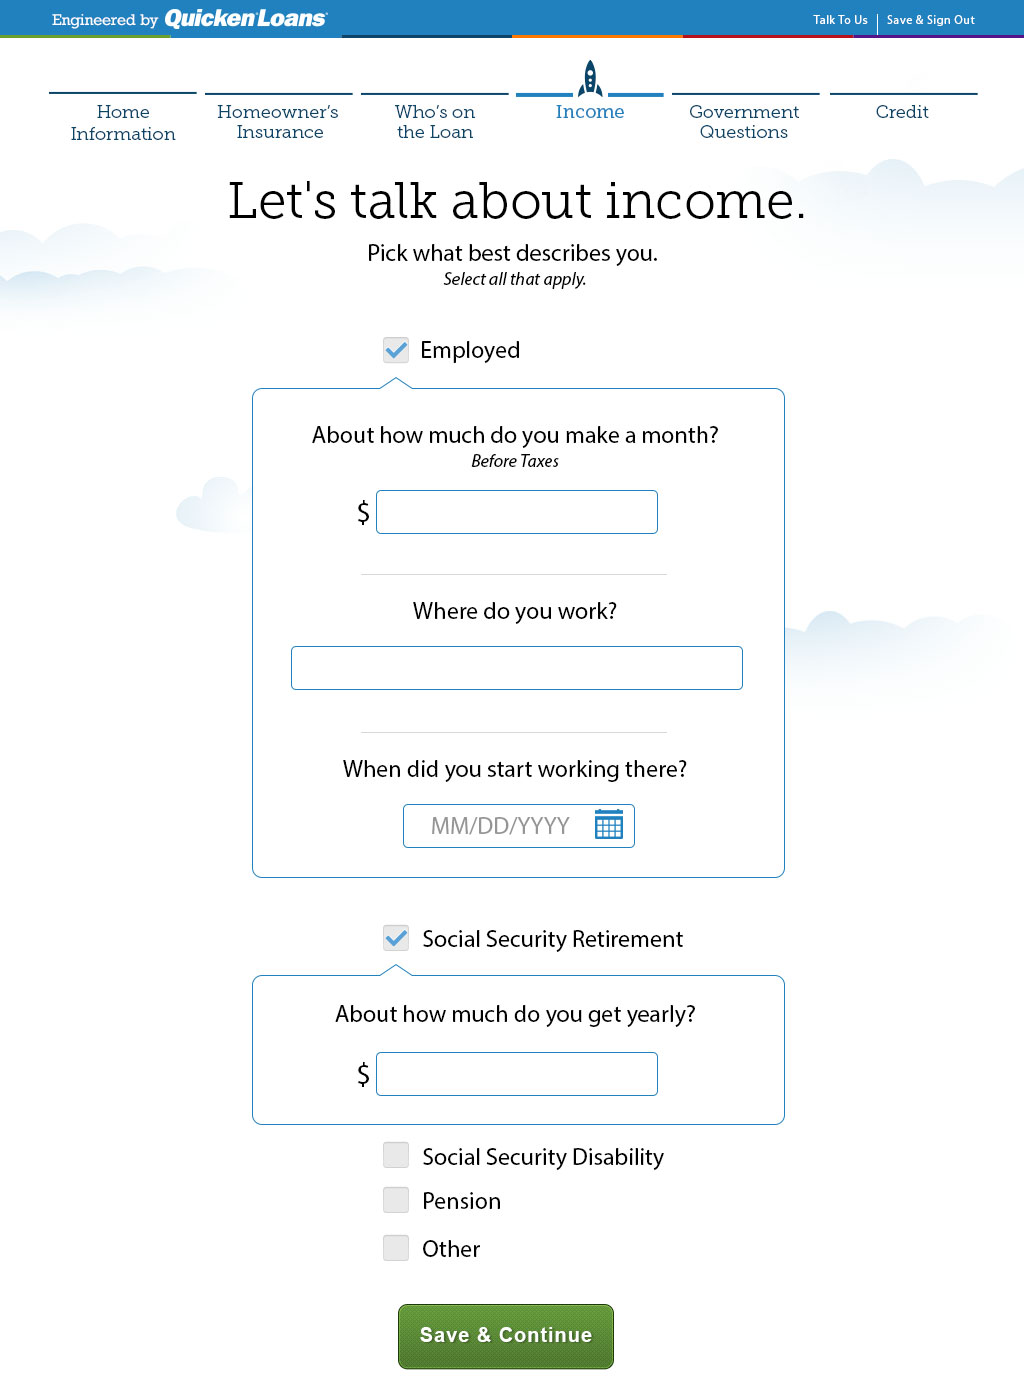 appQuestions_Income-multiselect1.jpg